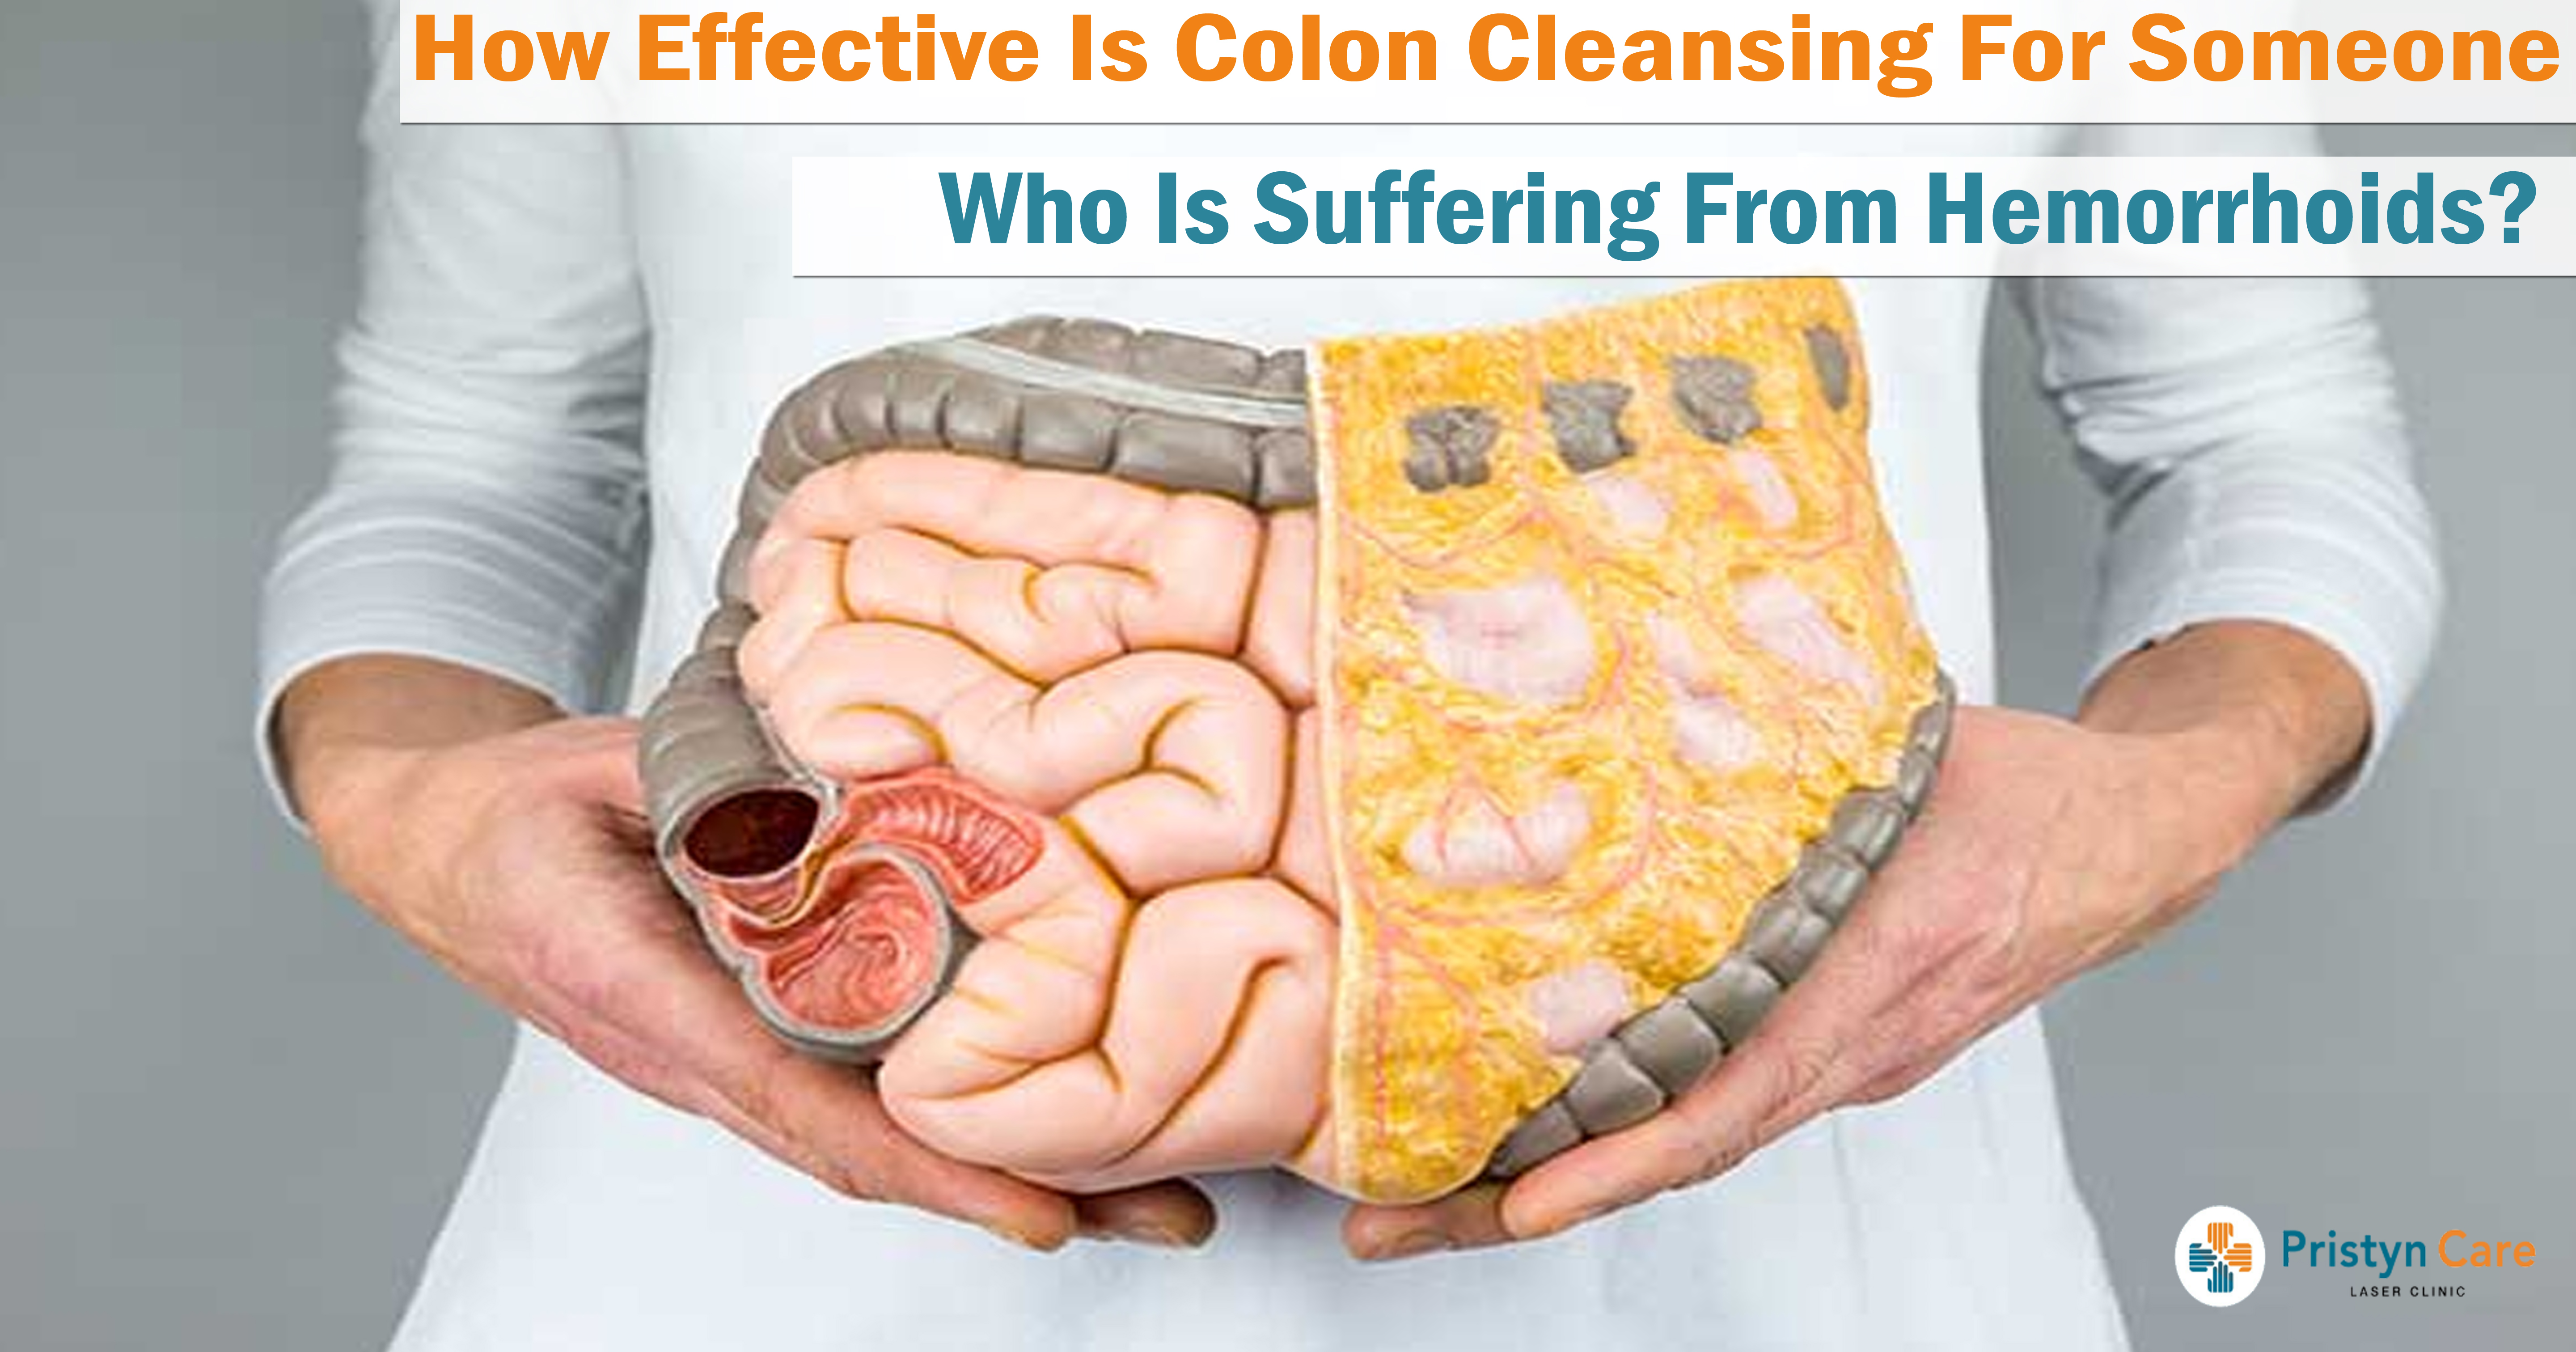 How Effective Is Colon Cleansing For Someone Who Is Suffering From Hemorrhoids?